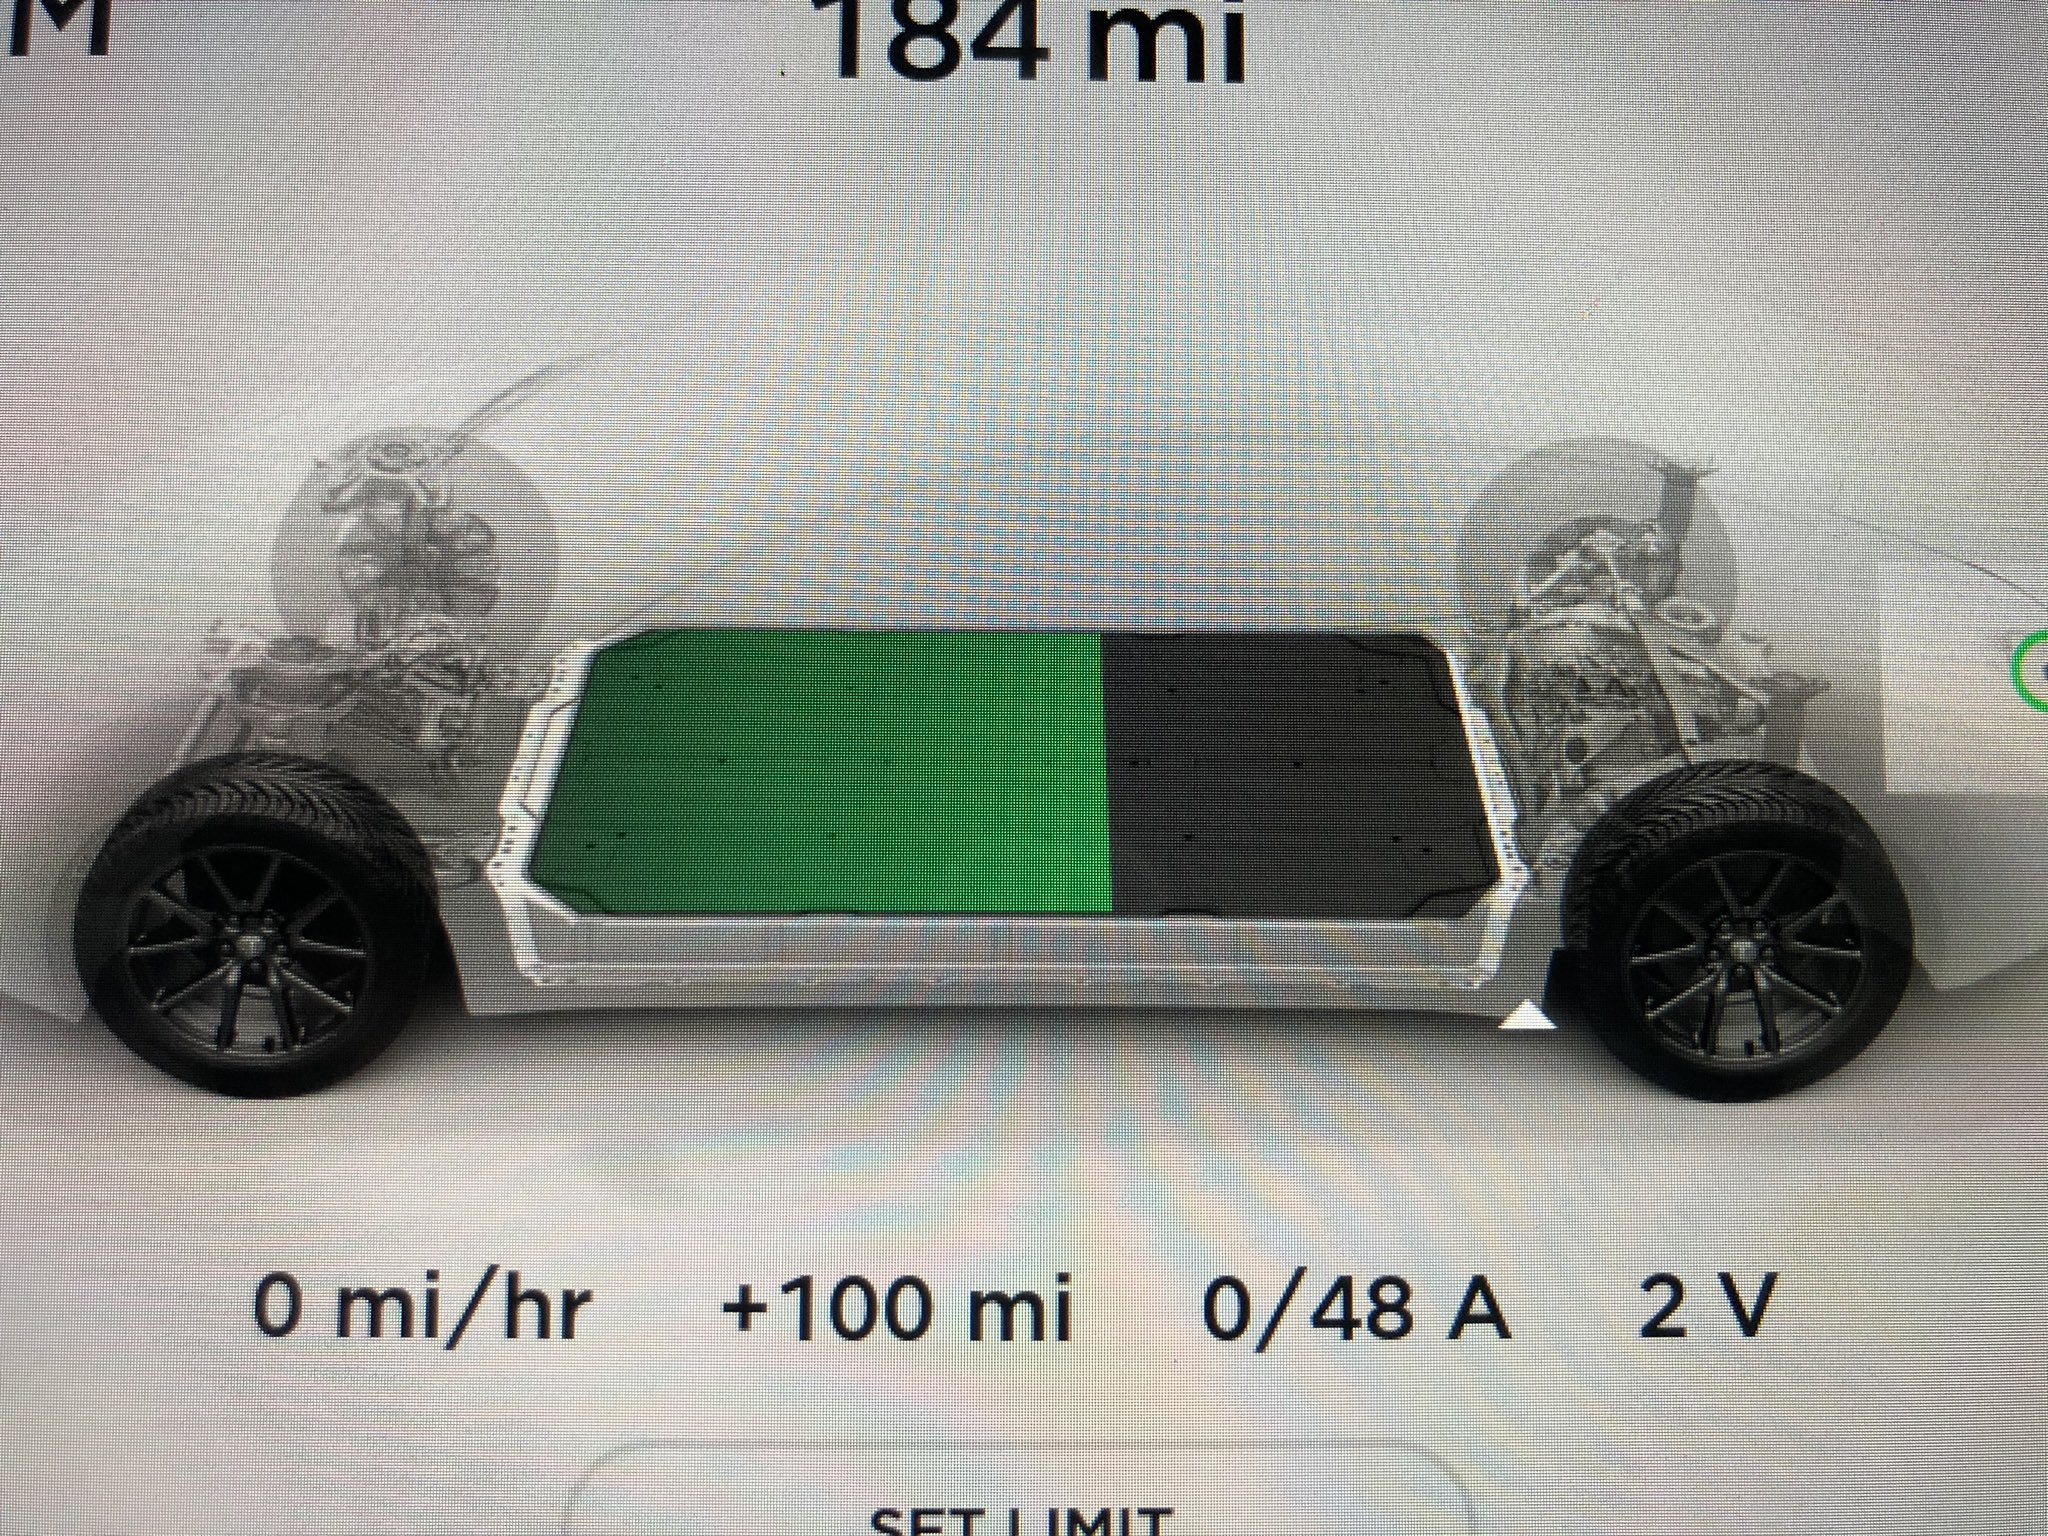 Tesla Model 3 avatar without aero covers charging